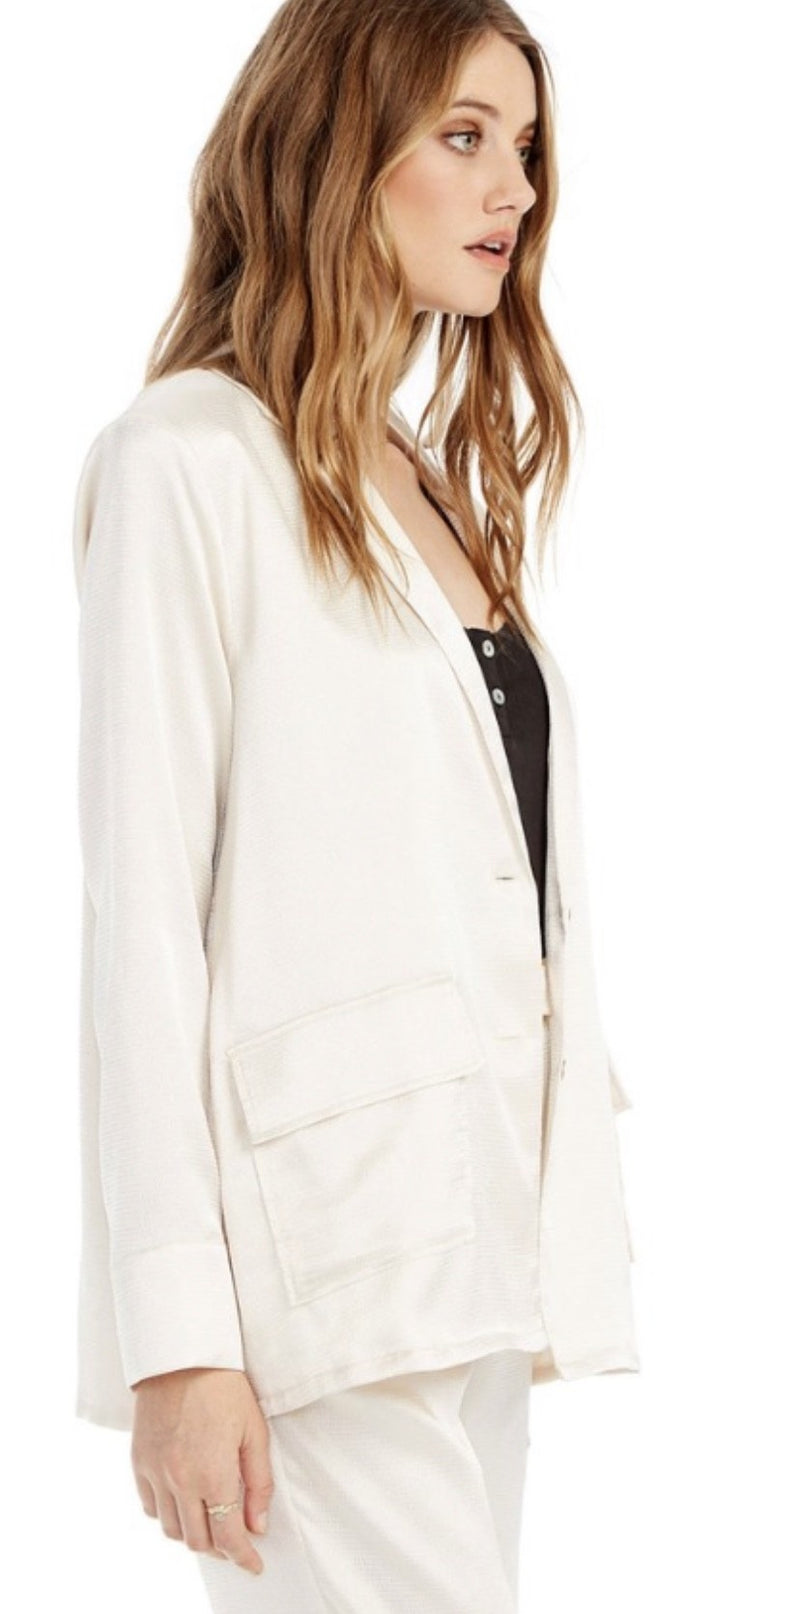 Saltwater Luxe Light Weight Lined Jacket